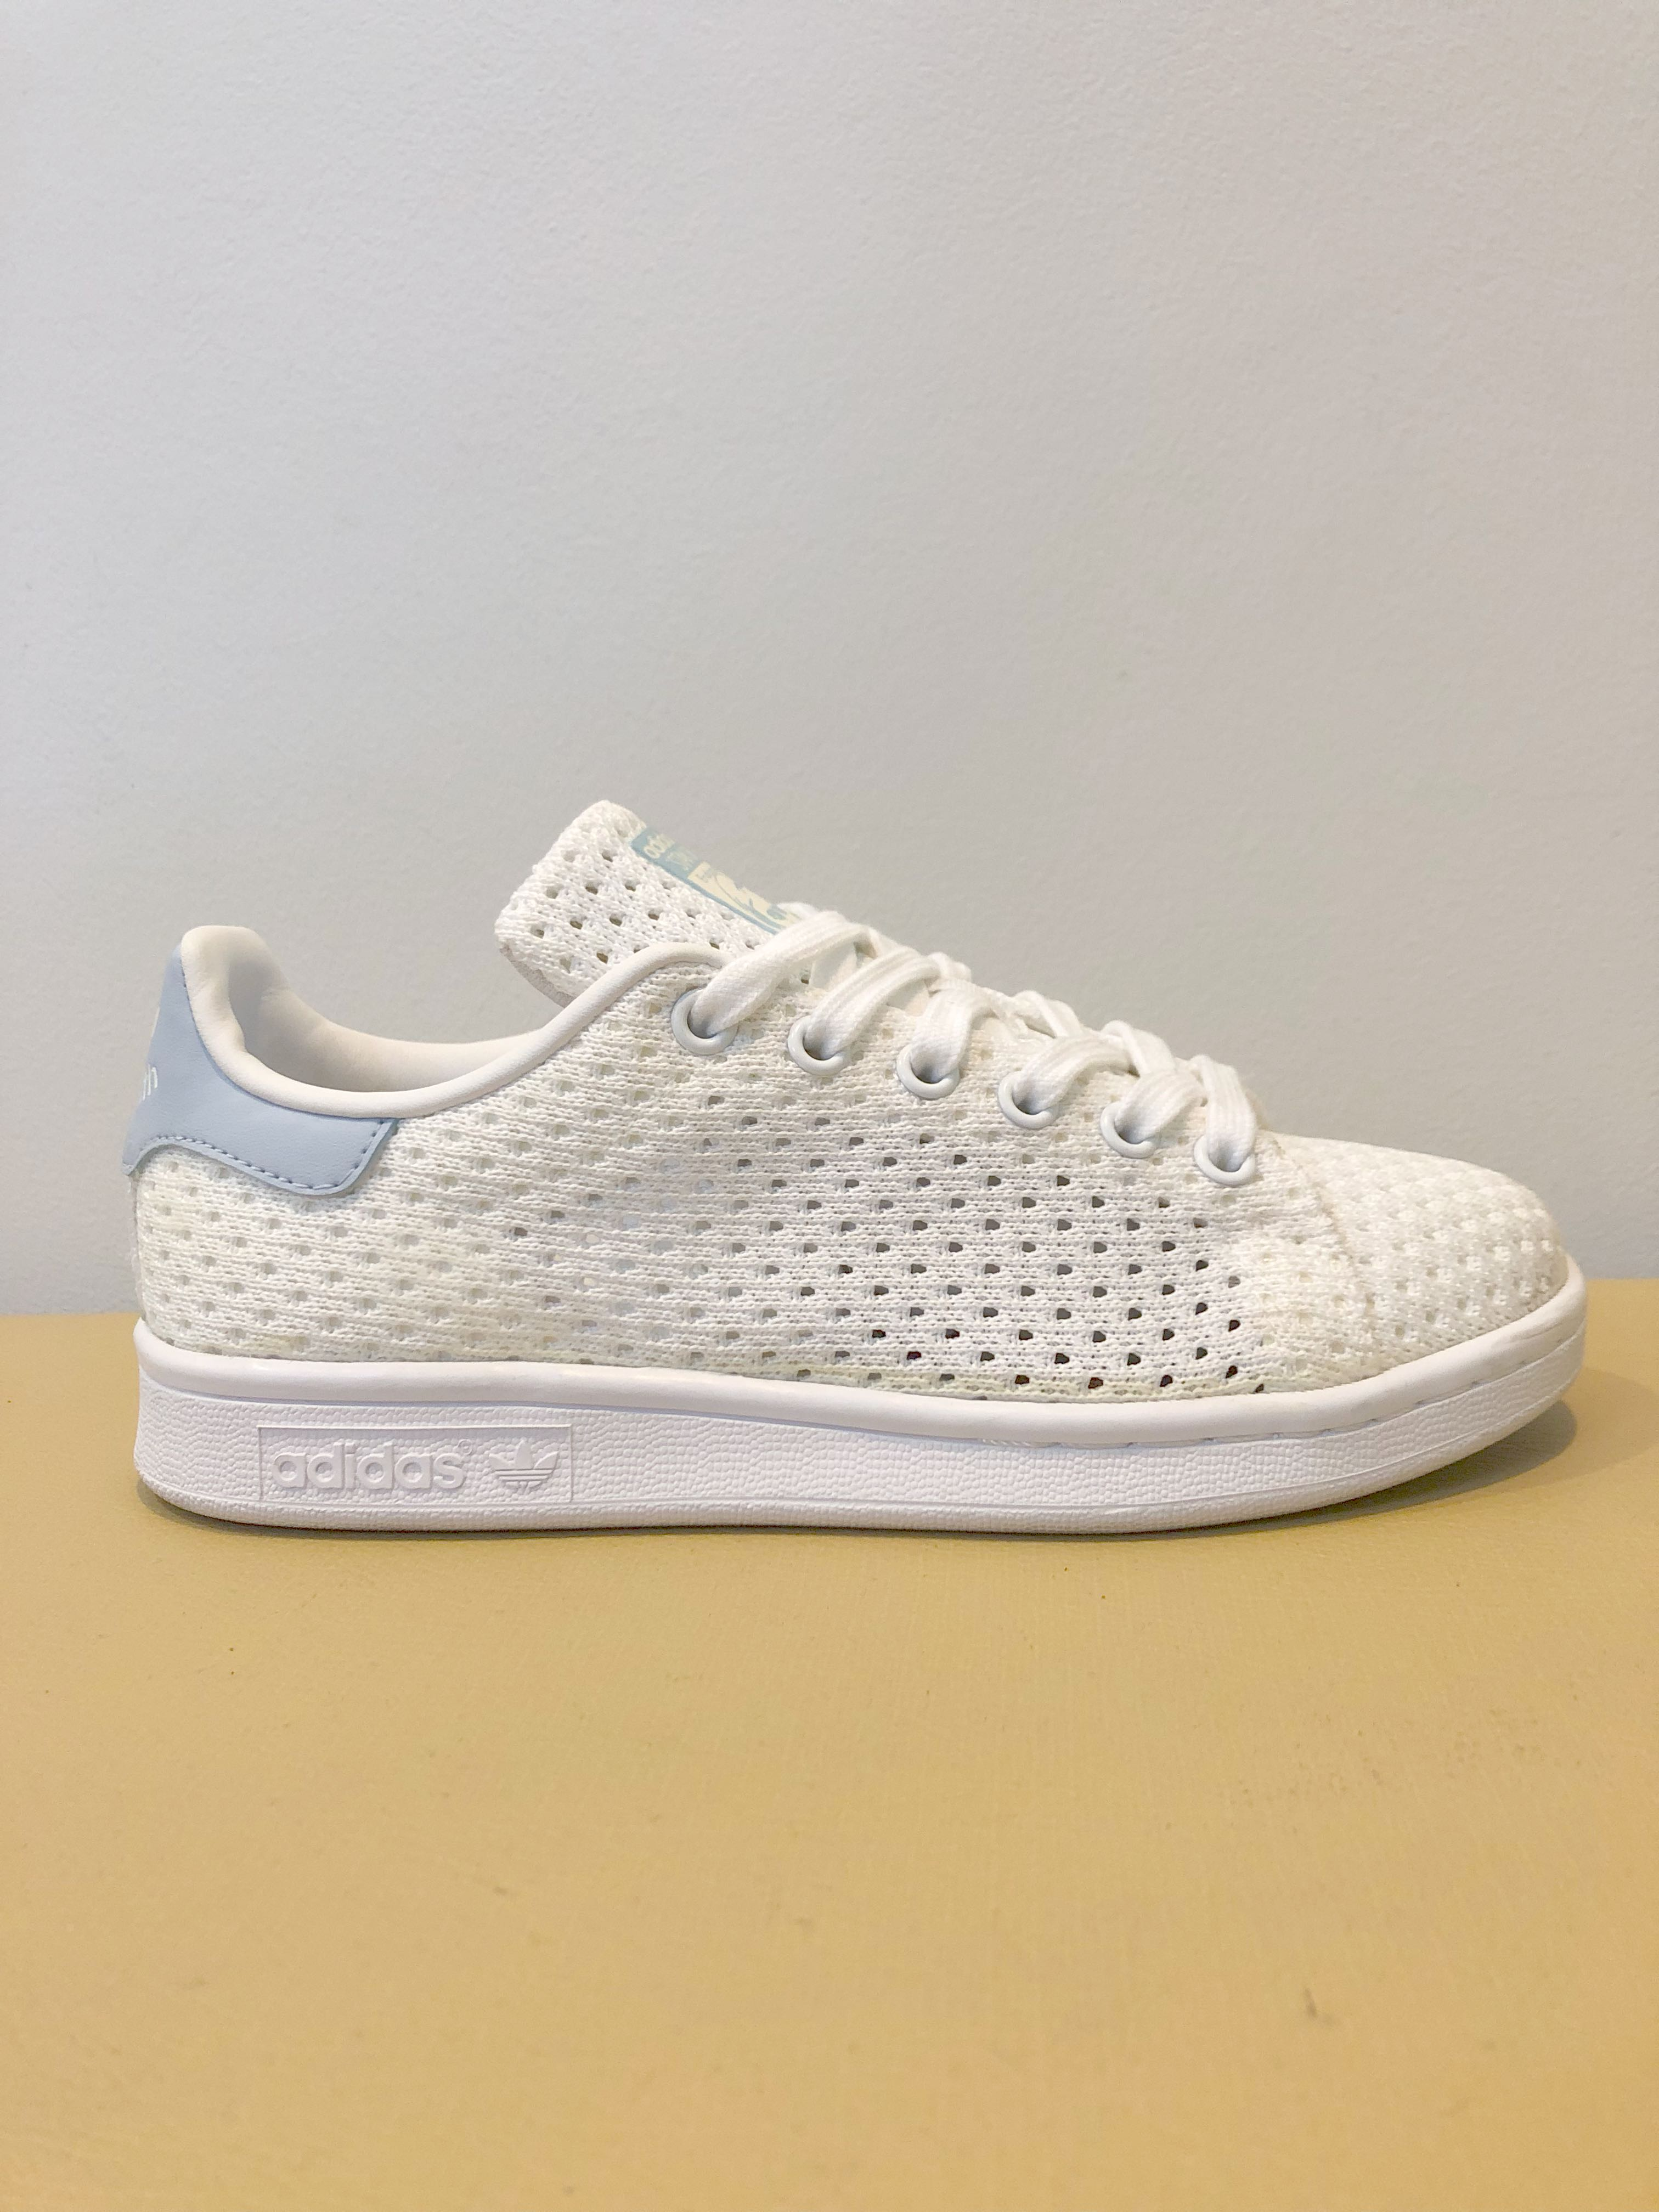 US5 Adidas Stan Smith Knit Mesh in Baby